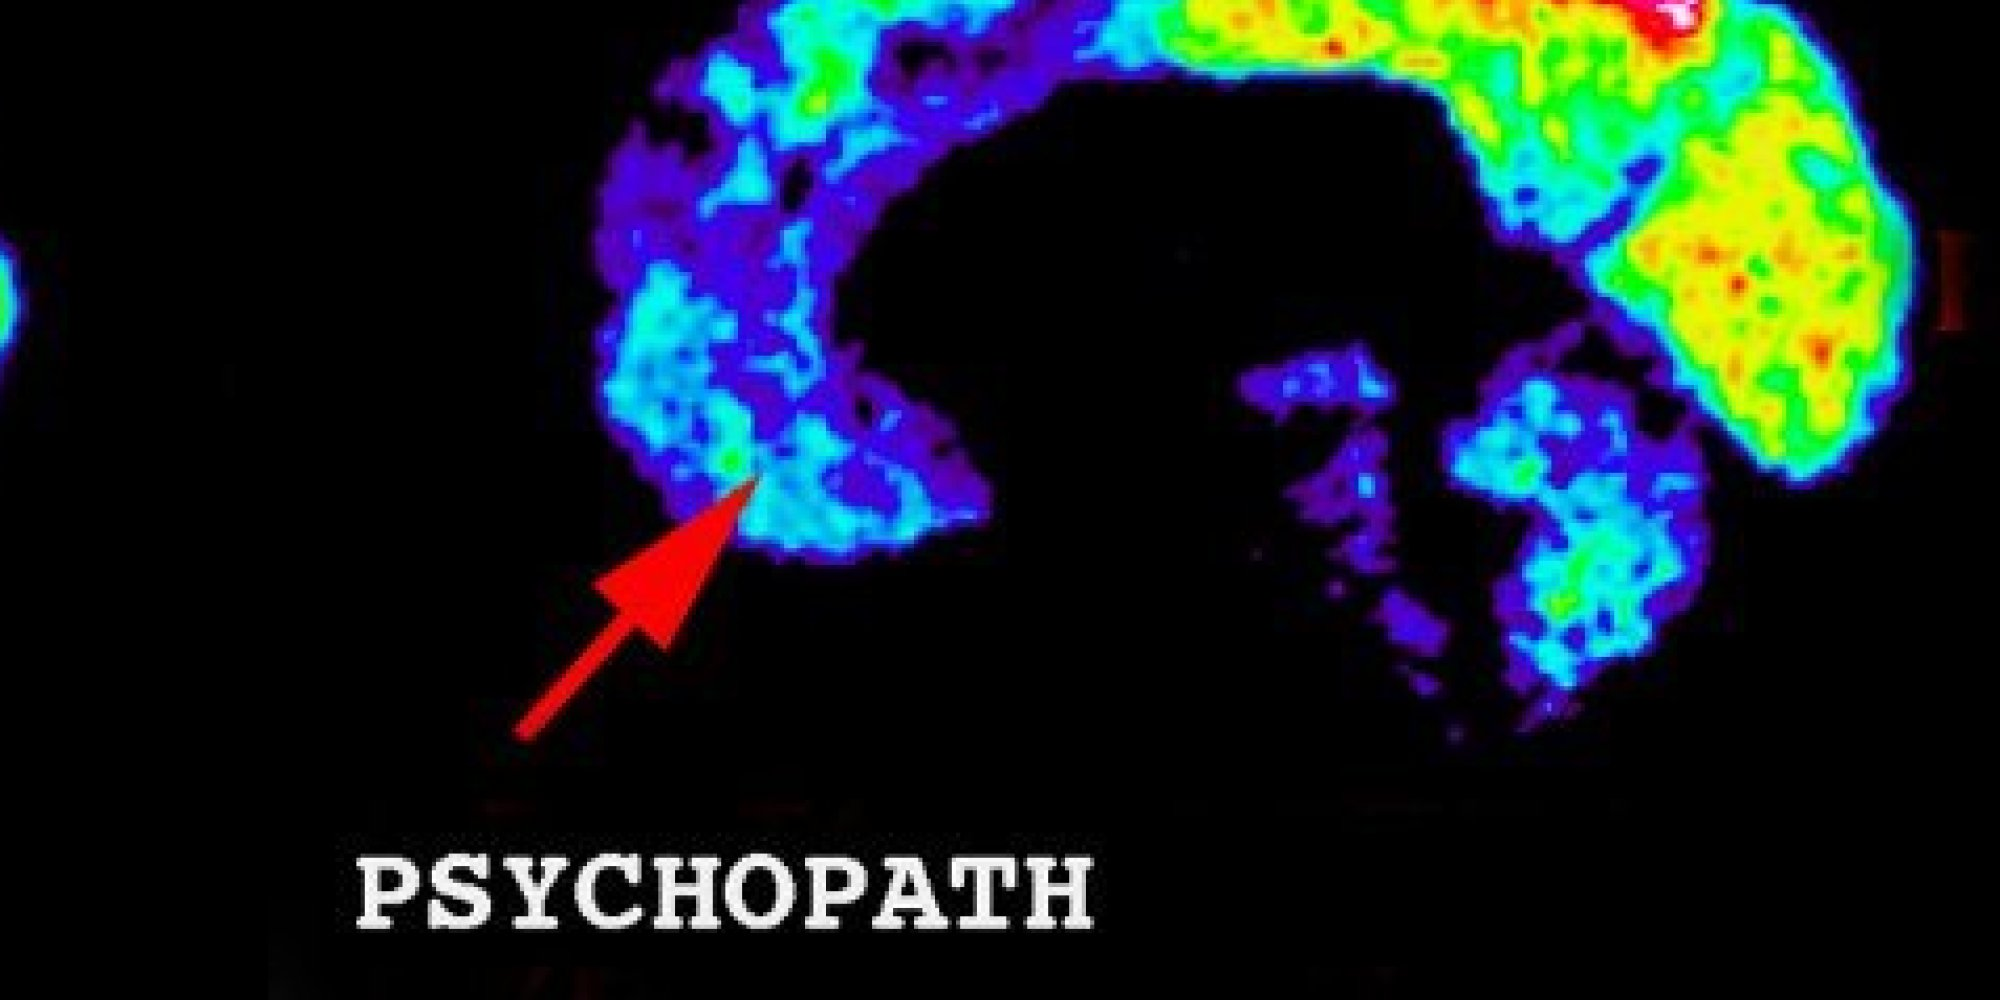 huffington post are you dating a psychopath Neuroscience behind idealize, devalue, and discard i love you now go away | the psychopath's love cycle huffington post are you dating a psychopath.